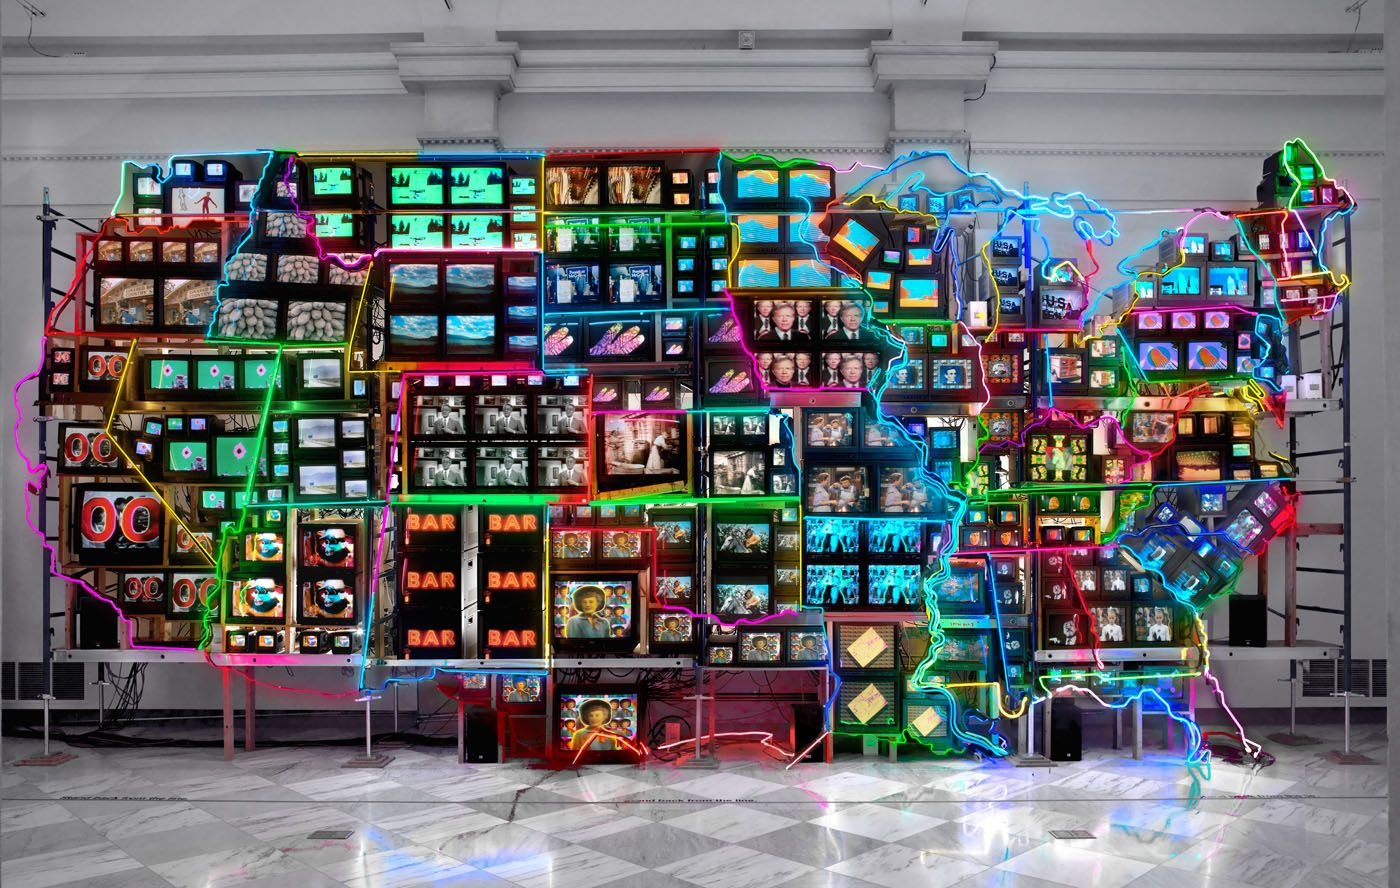 NPR broadcast, Exploring the 'Electronic Superhighway' JULY 04, 2006 on 238. Electronic Superhighway. Nam June Paik. 1995 C.E. Mixed-media installation (49-channel closed circuit video installation, neon, steel, and electronic components).